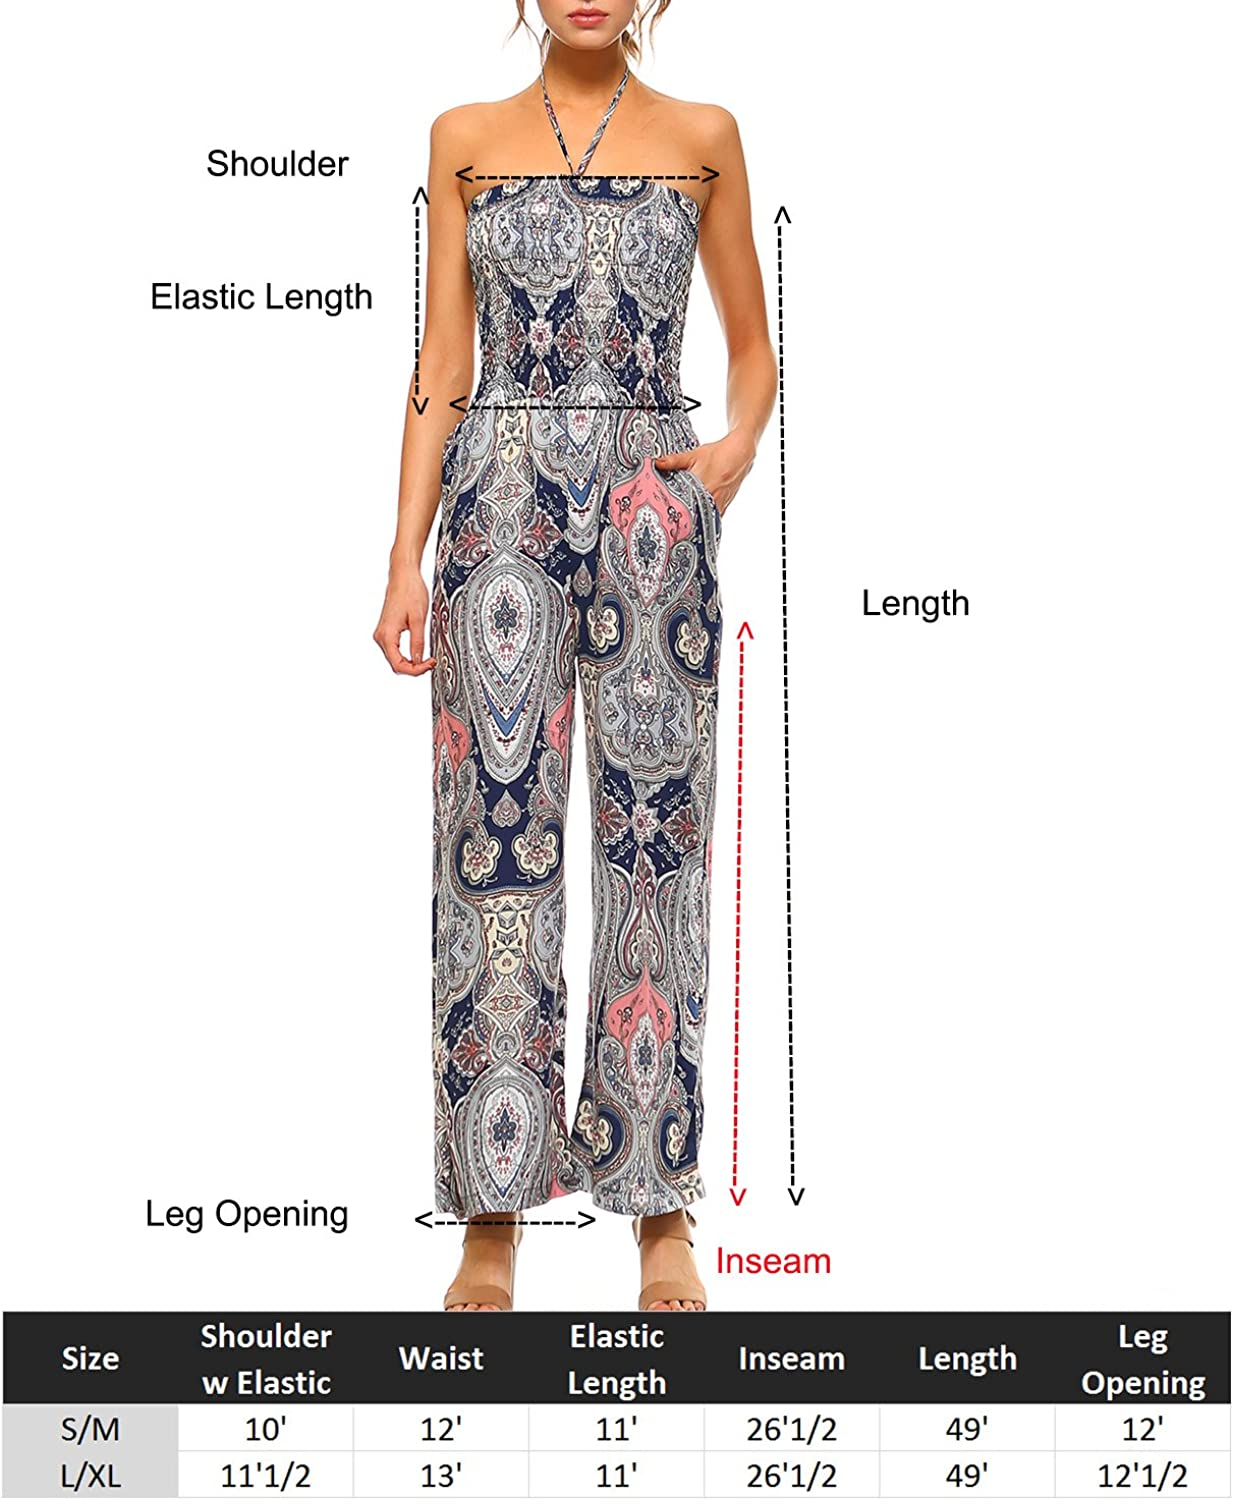 Fashionazzle Womens Casual Solid and Print Jumpsuit Variety Playsuit